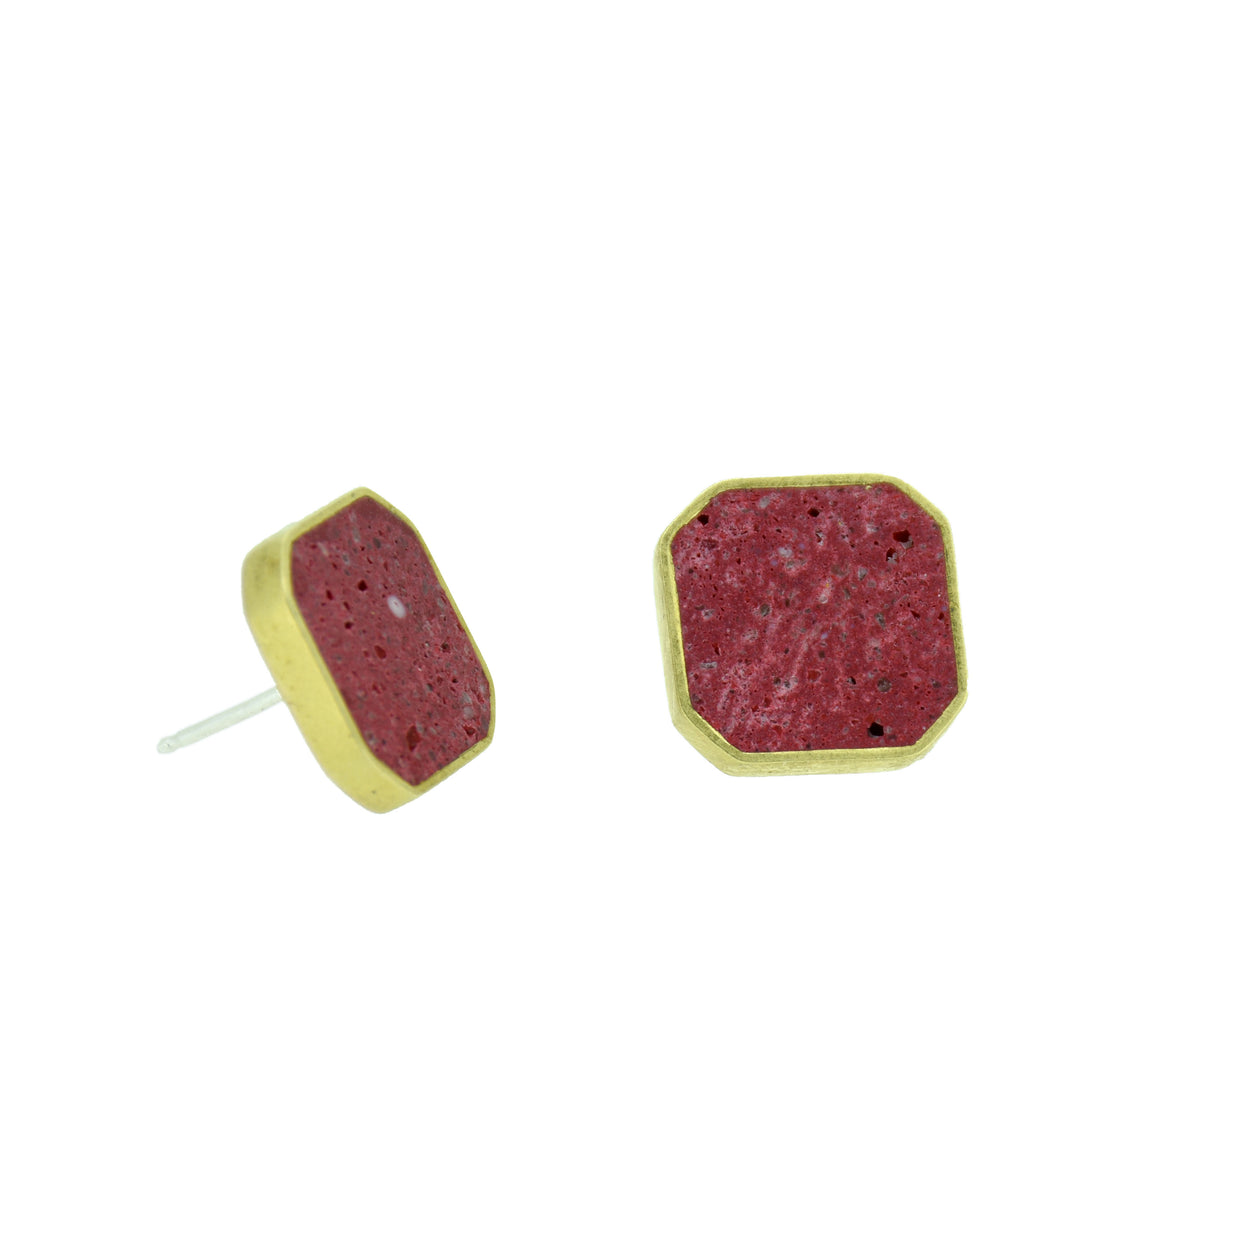 Concrete cluster earrings with red pigmented concrete in a brass octagon shaped setting